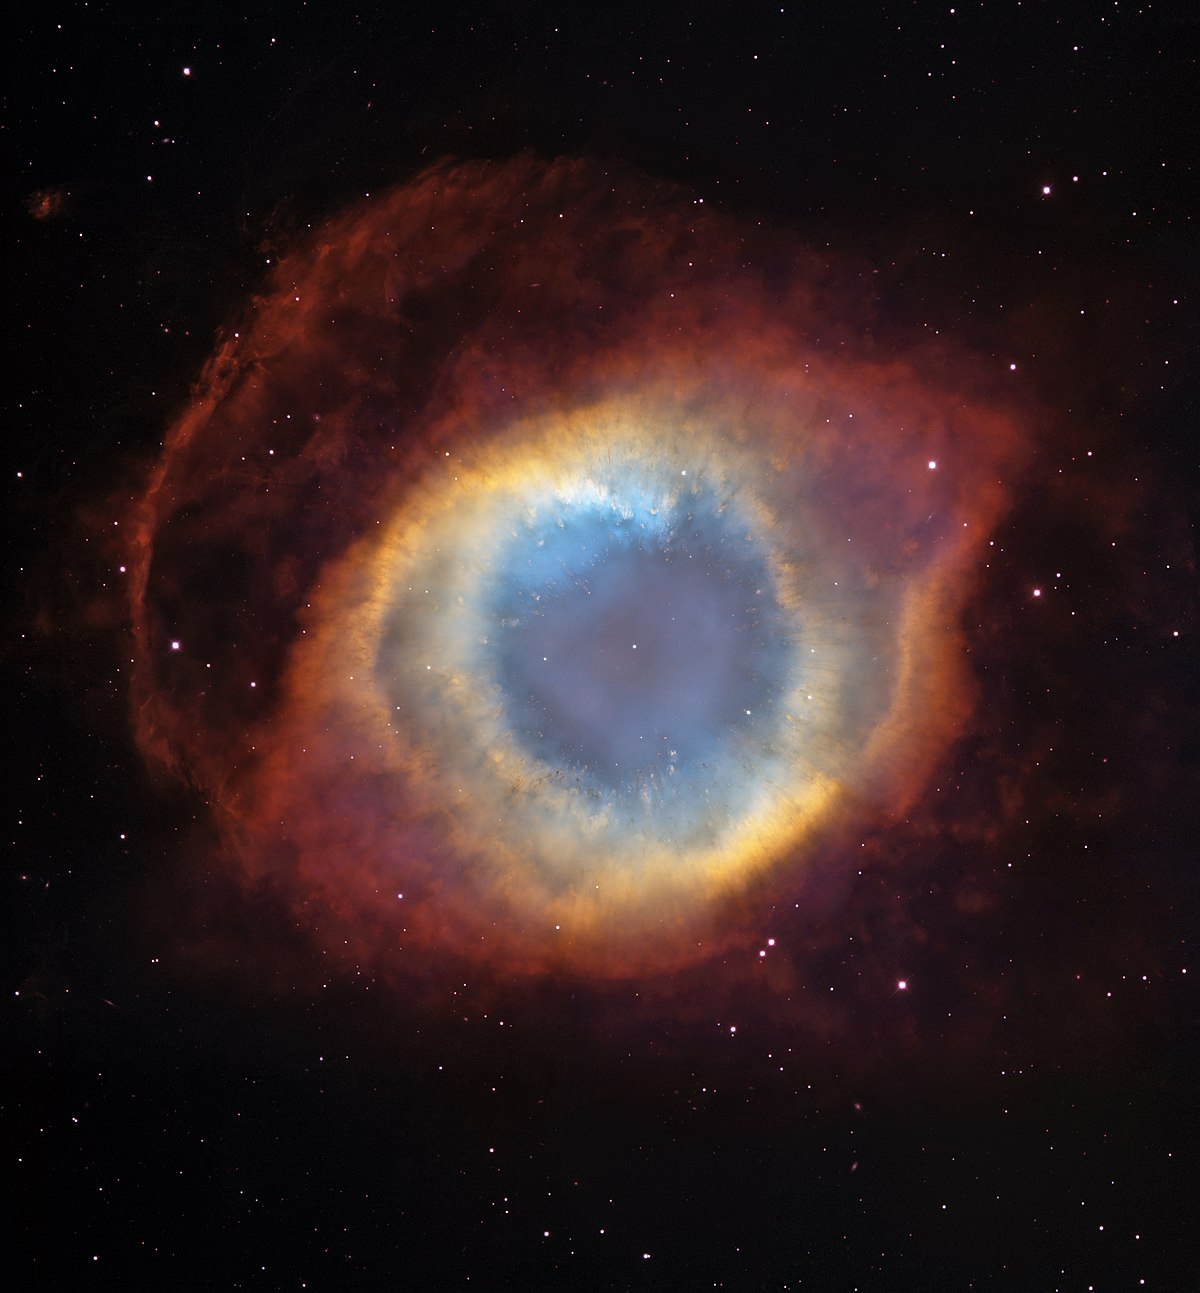 Helix Nebula. Credit: NASA, ESA, and C.R. O'Dell (Vanderbilt University)